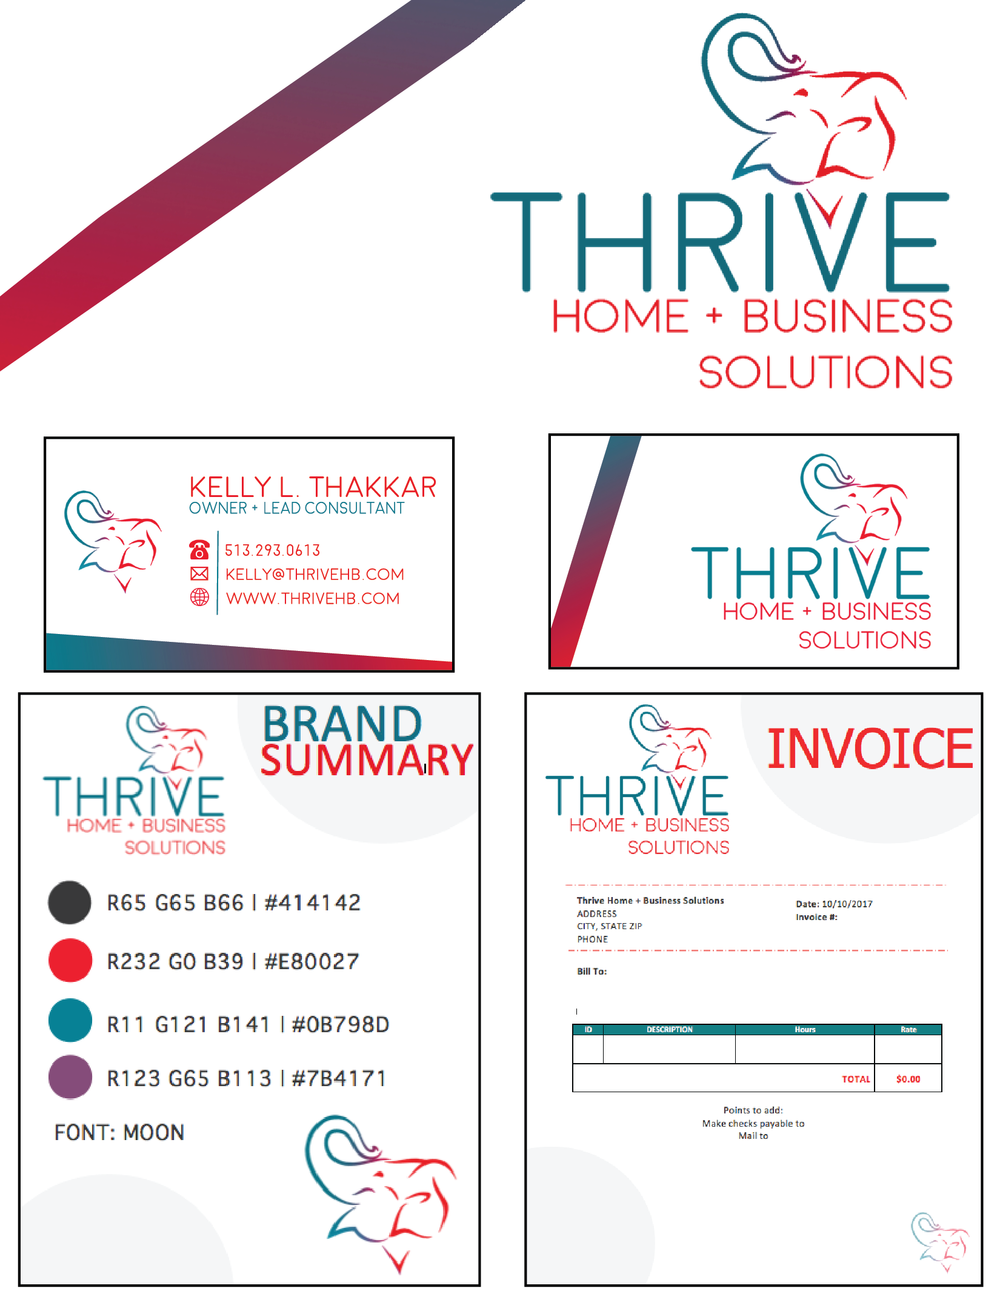 THRIVE HBNEW CONSULTING START-UP - SUNNY SCEDEVELOPED LOGO, BUSINESS CARDS, BRAND SUMMARY, INVOICES, AND VARIOUS OTHER PRINT-BASED MARKETING MATERIALS